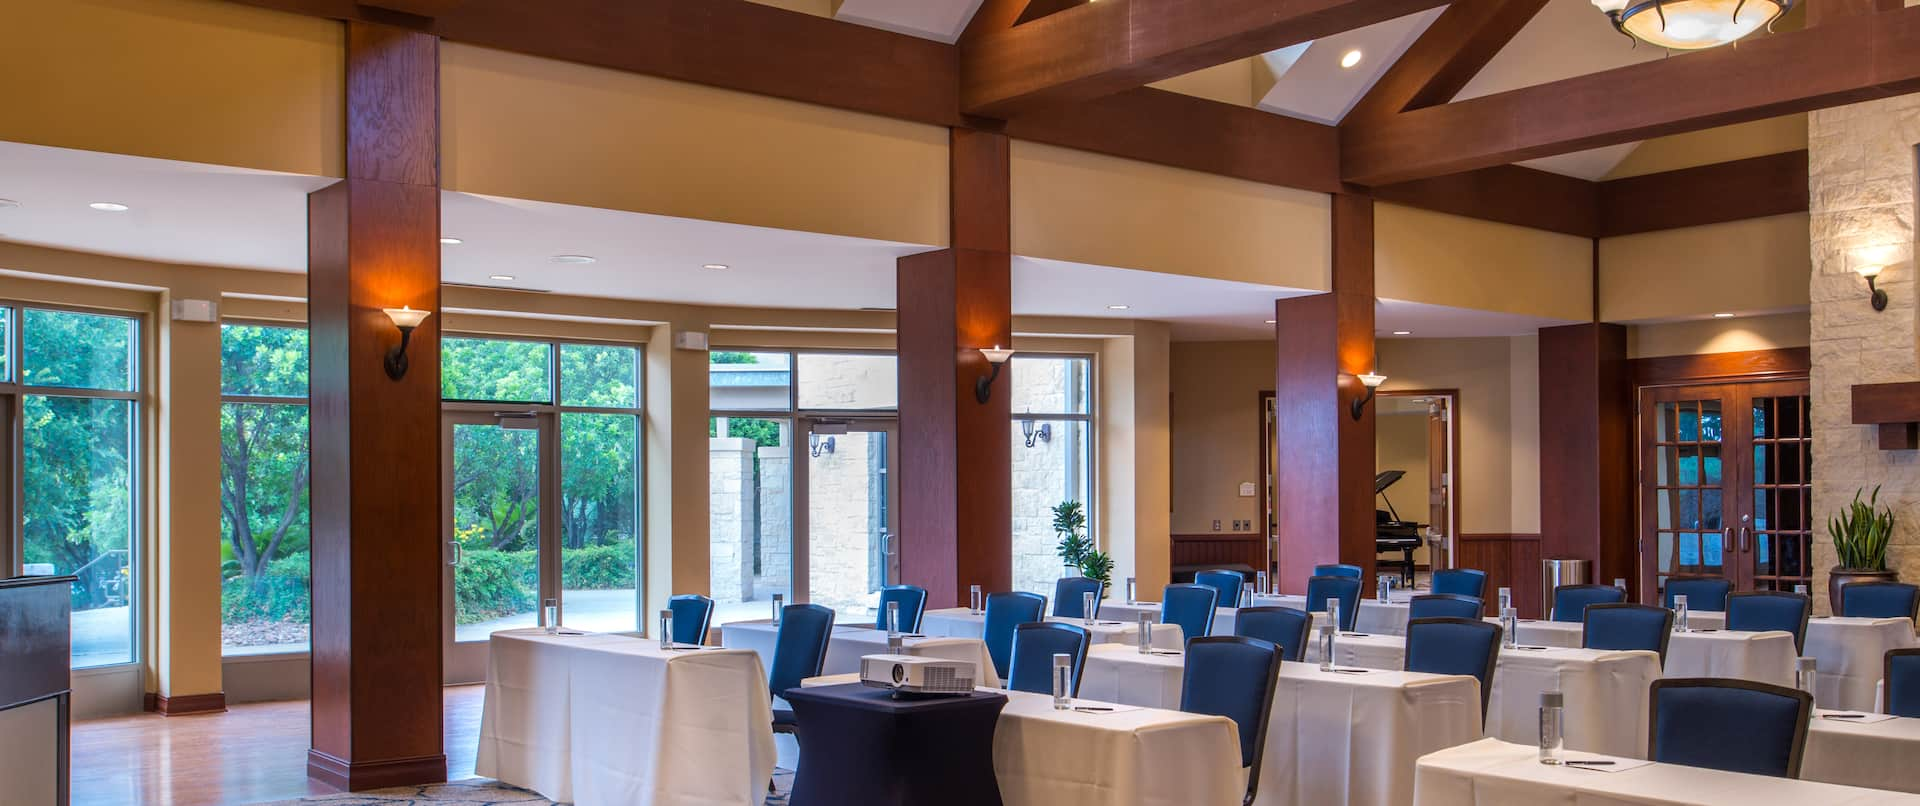 Meeting and Banquet Venue with Open Ceiling and Large Timber Beams Exposed